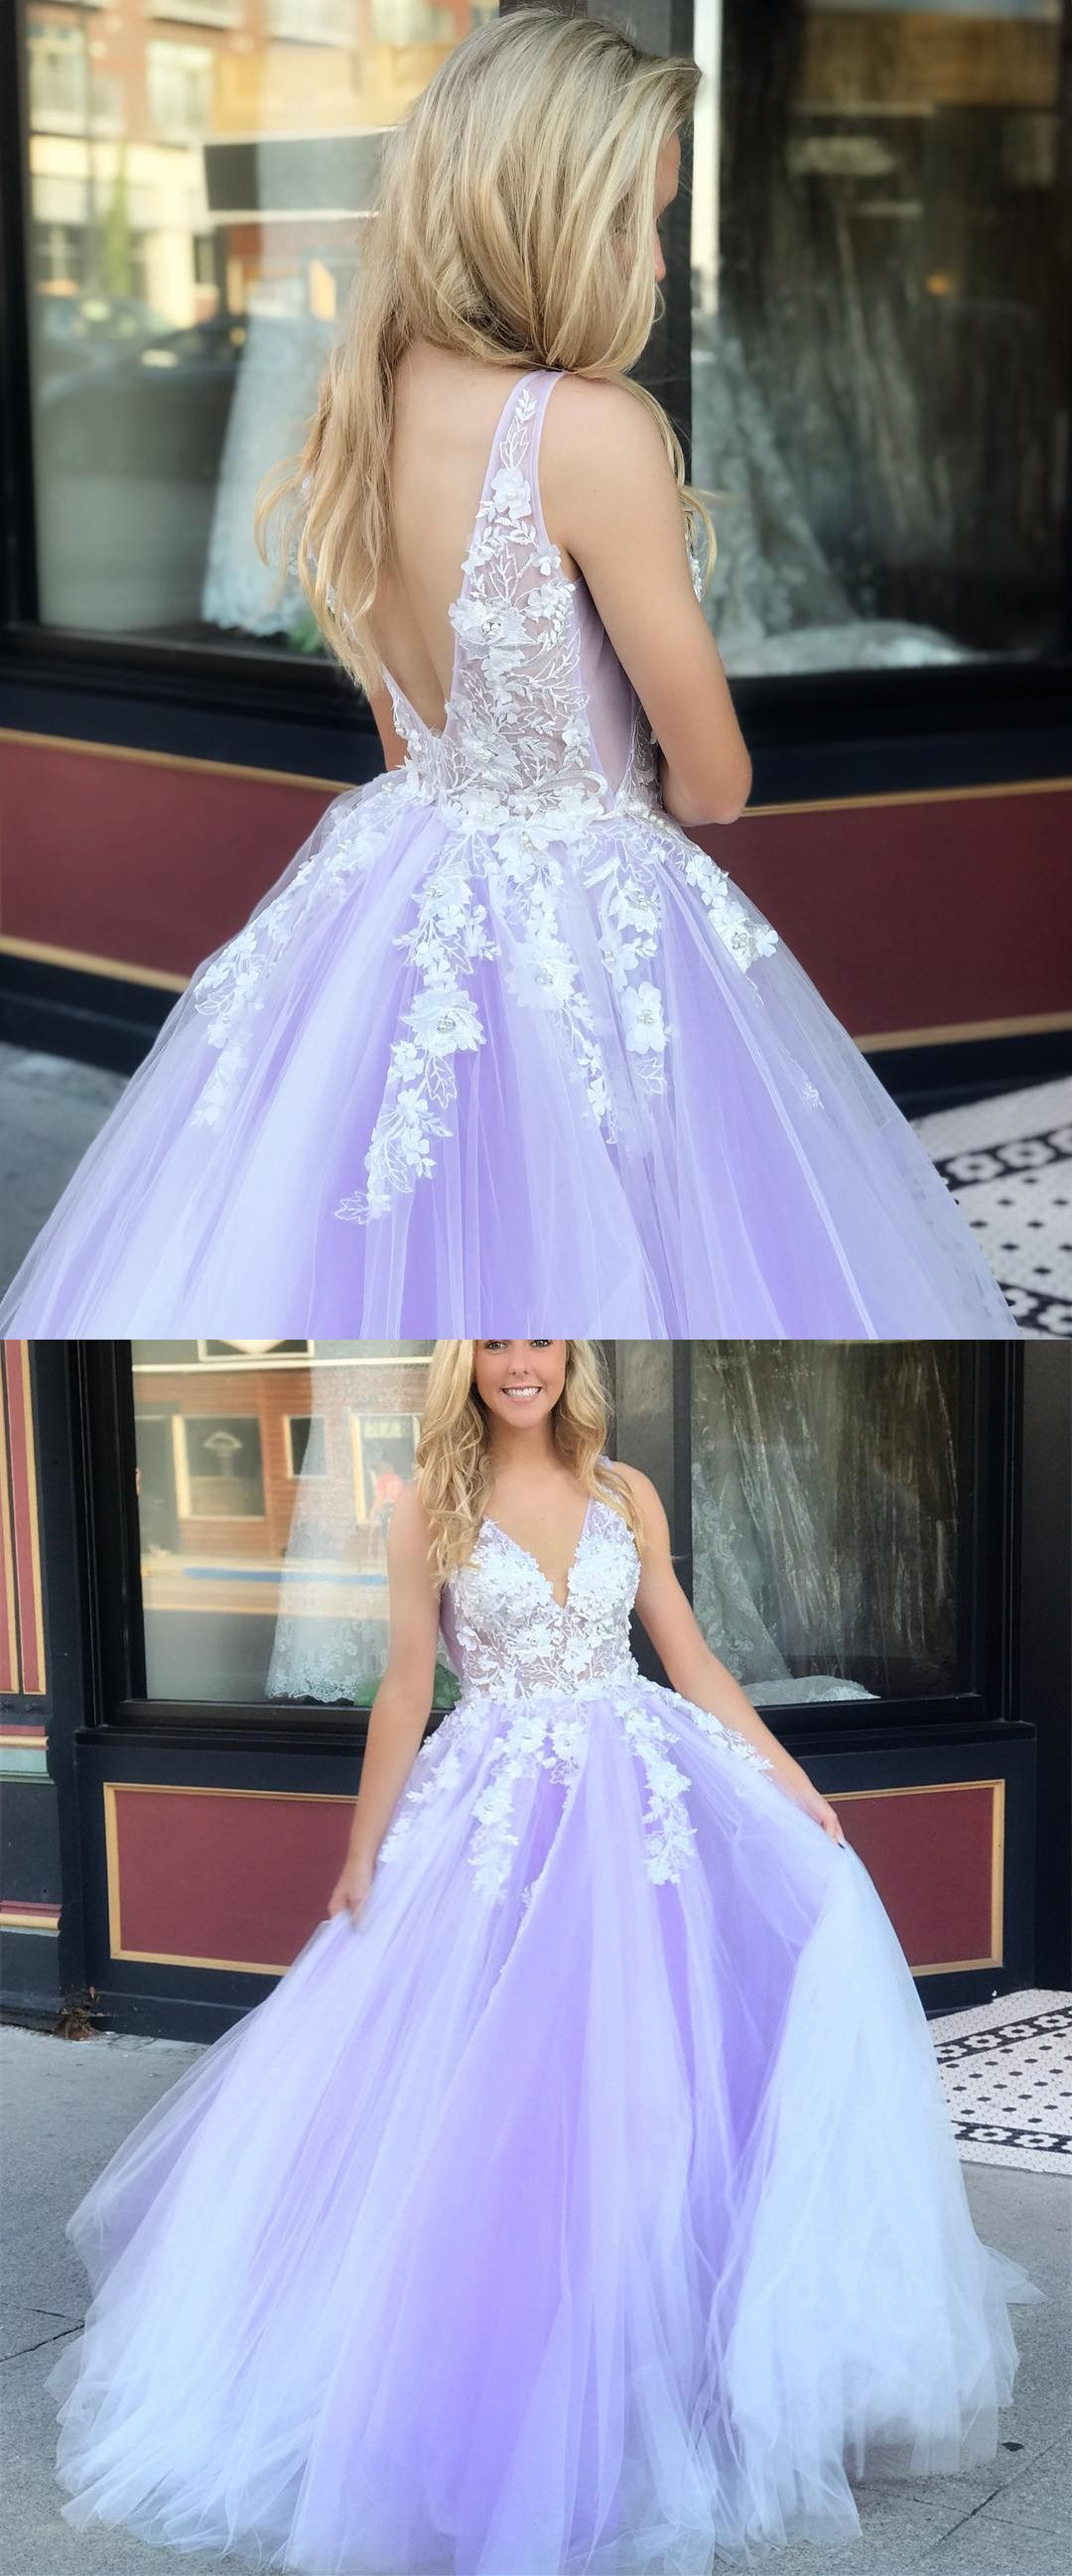 37d4a58793 princess lavender tulle long prom dress with white lace